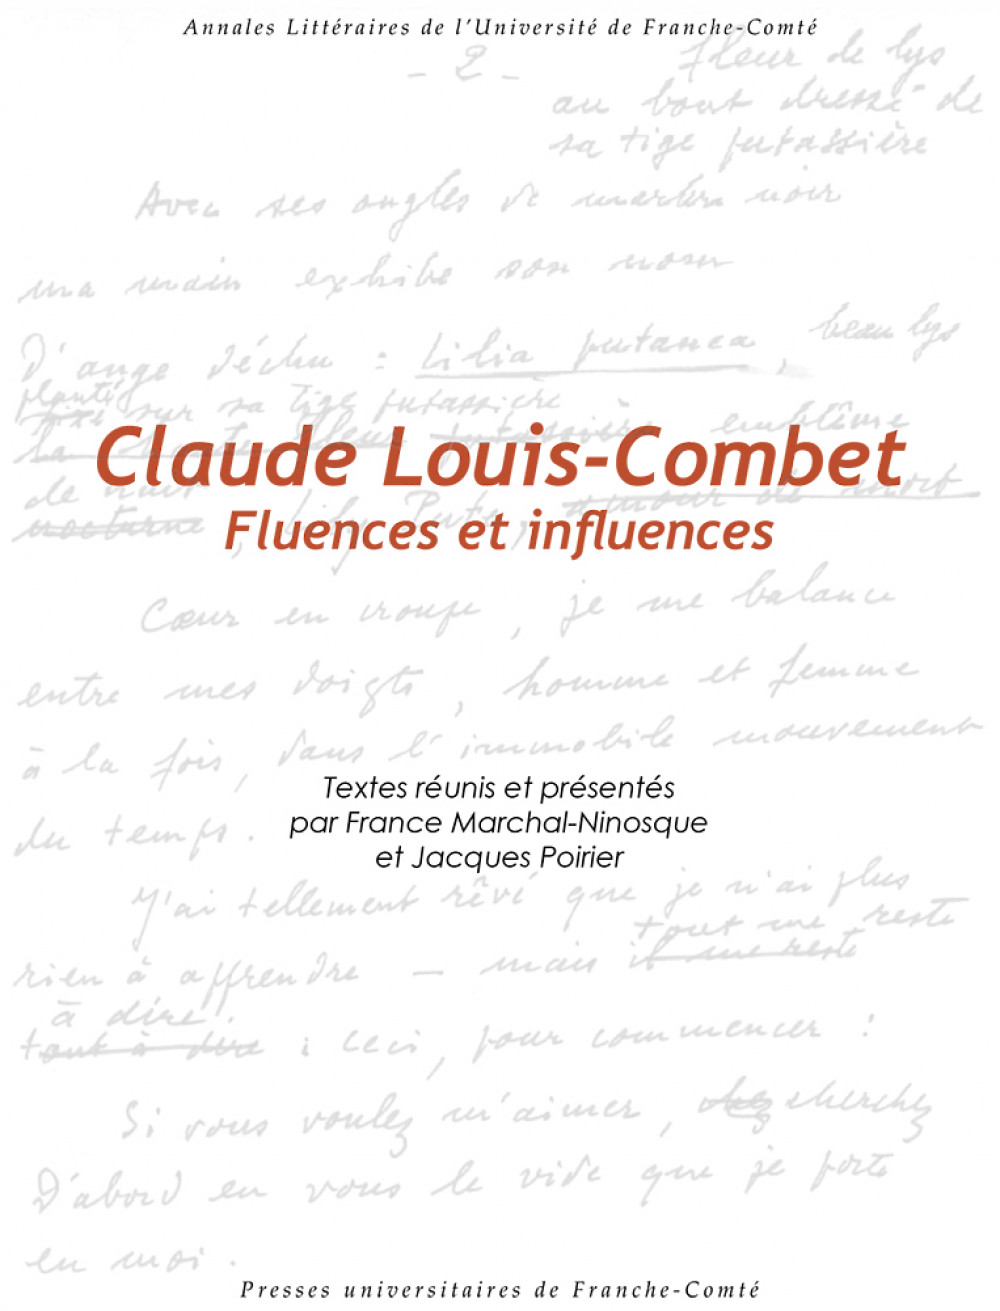 Claude Louis-Combet. Fluences et influences